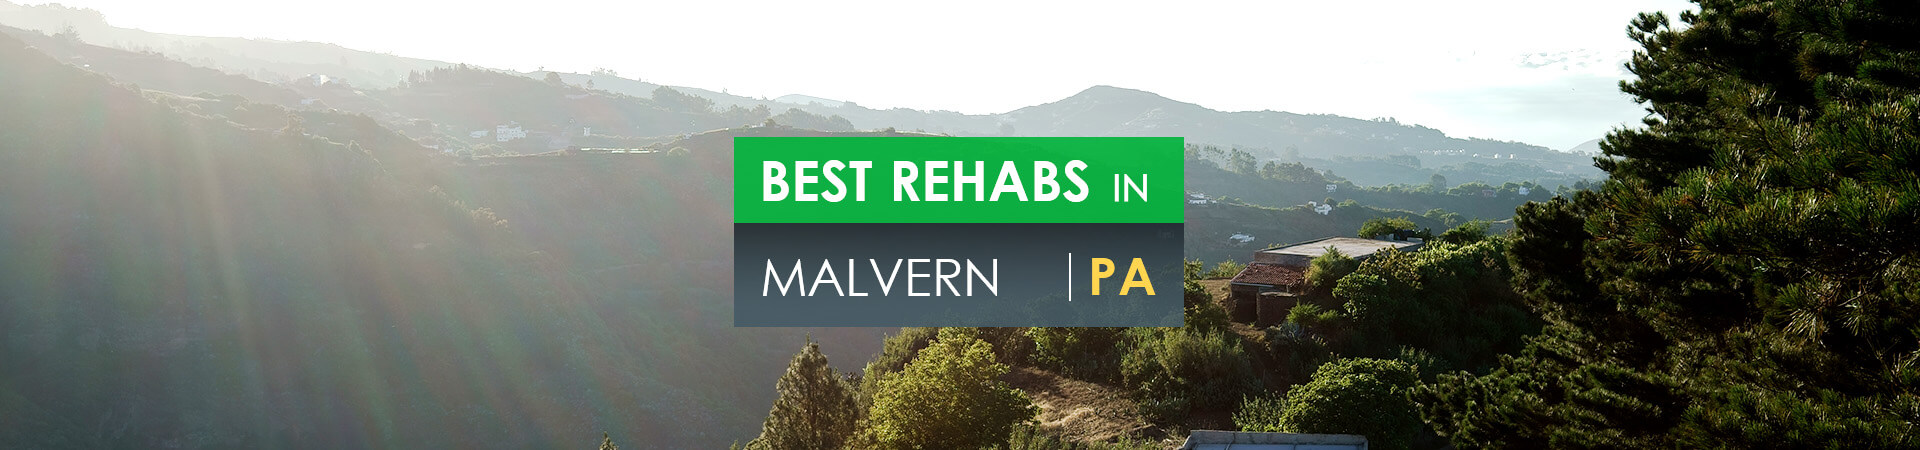 Best rehabs in Malvern, PA